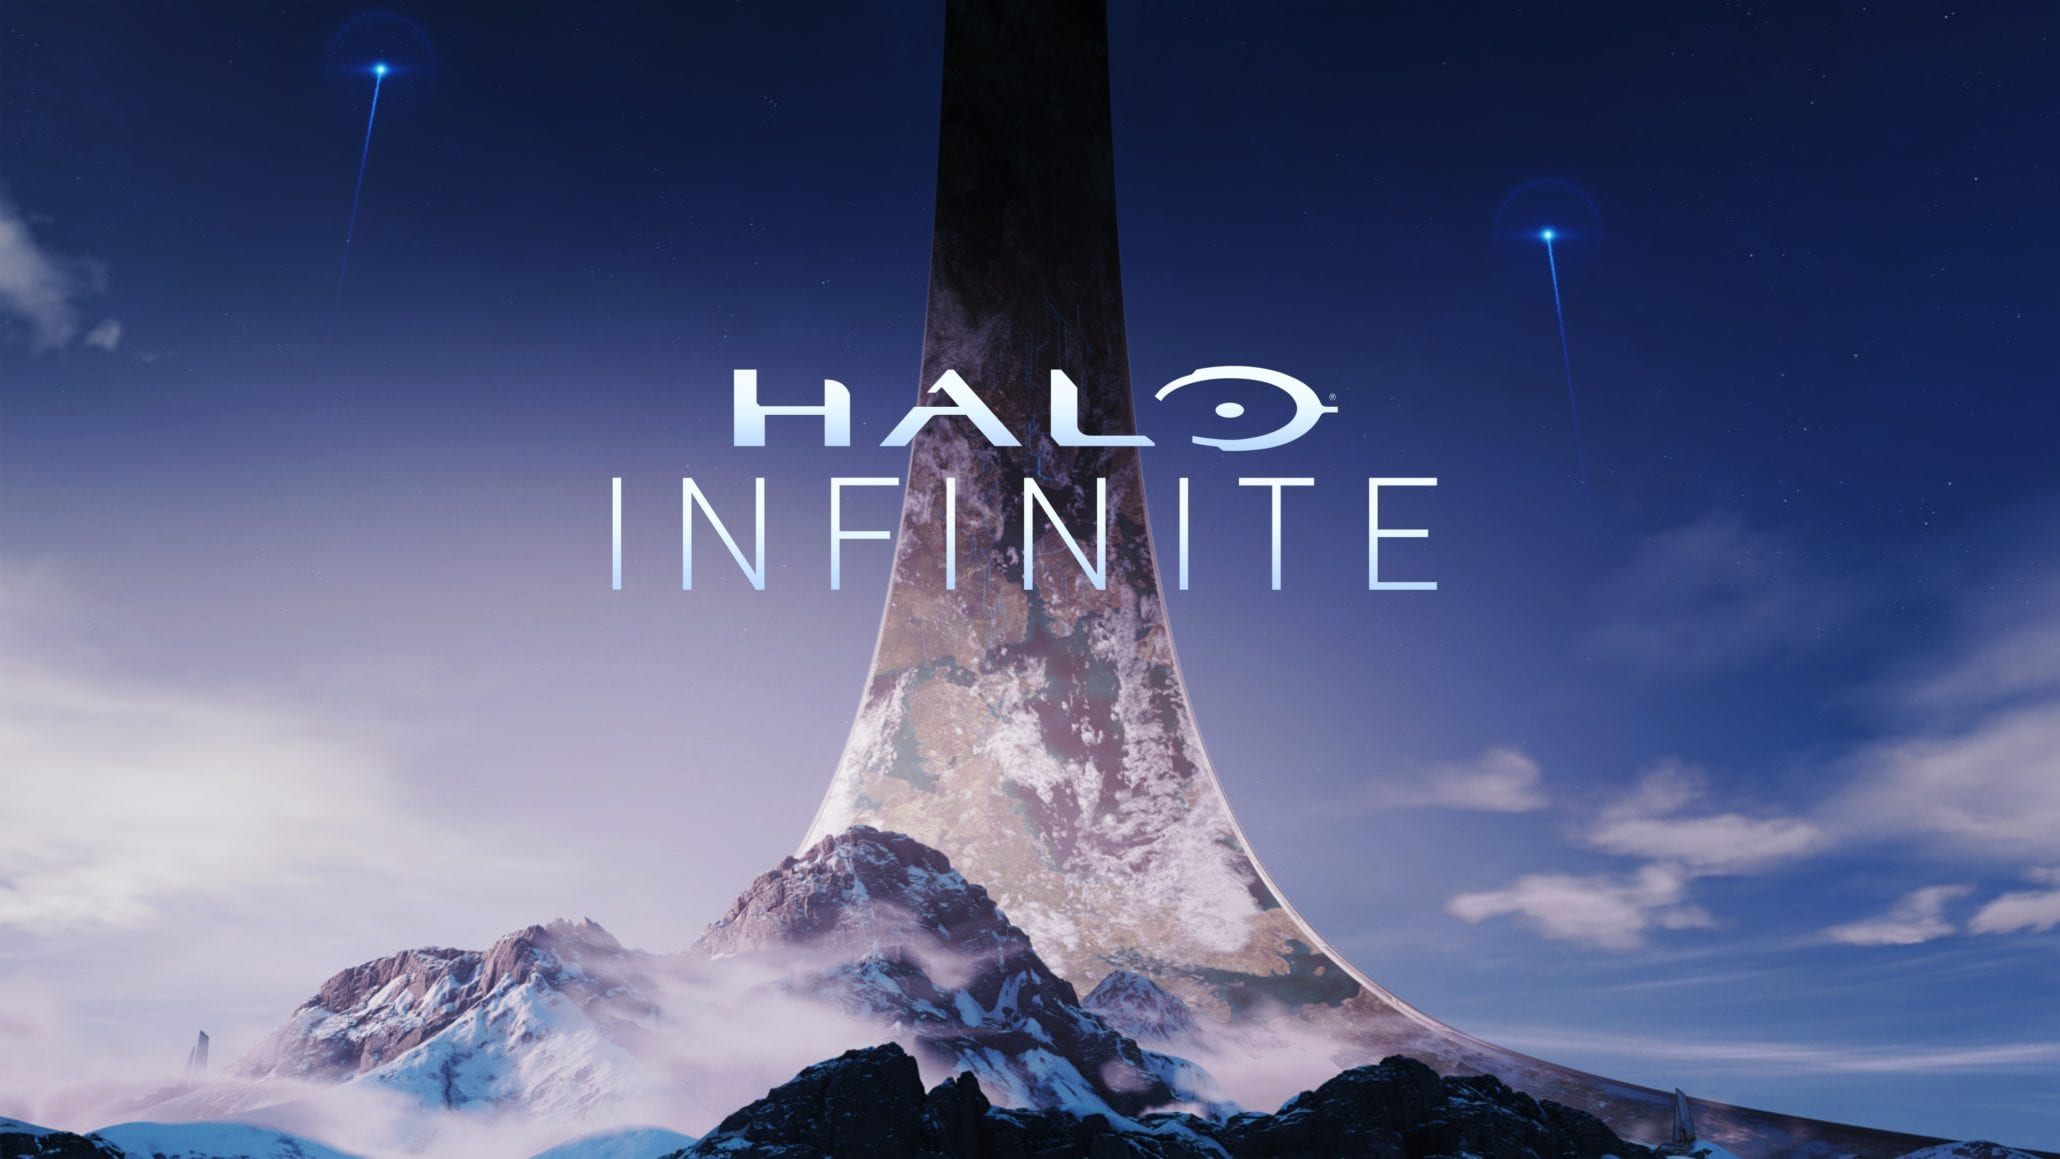 Halo Infinite will delight players with a large universe to explore